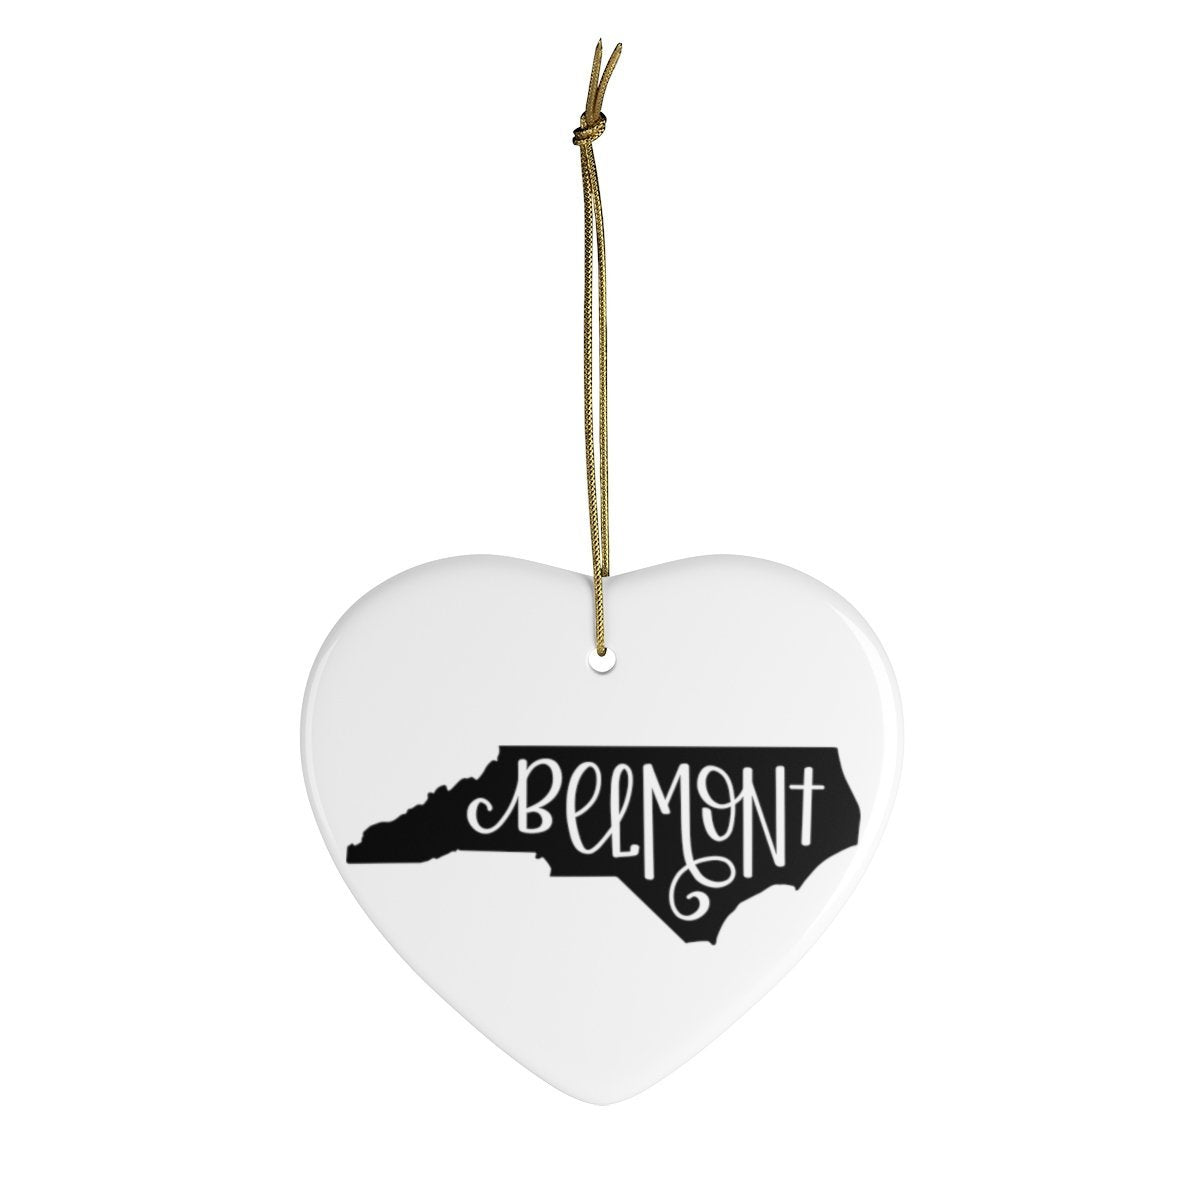 Leanne & Co. Home Decor Heart / One Size Belmont, NC Ceramic Ornament